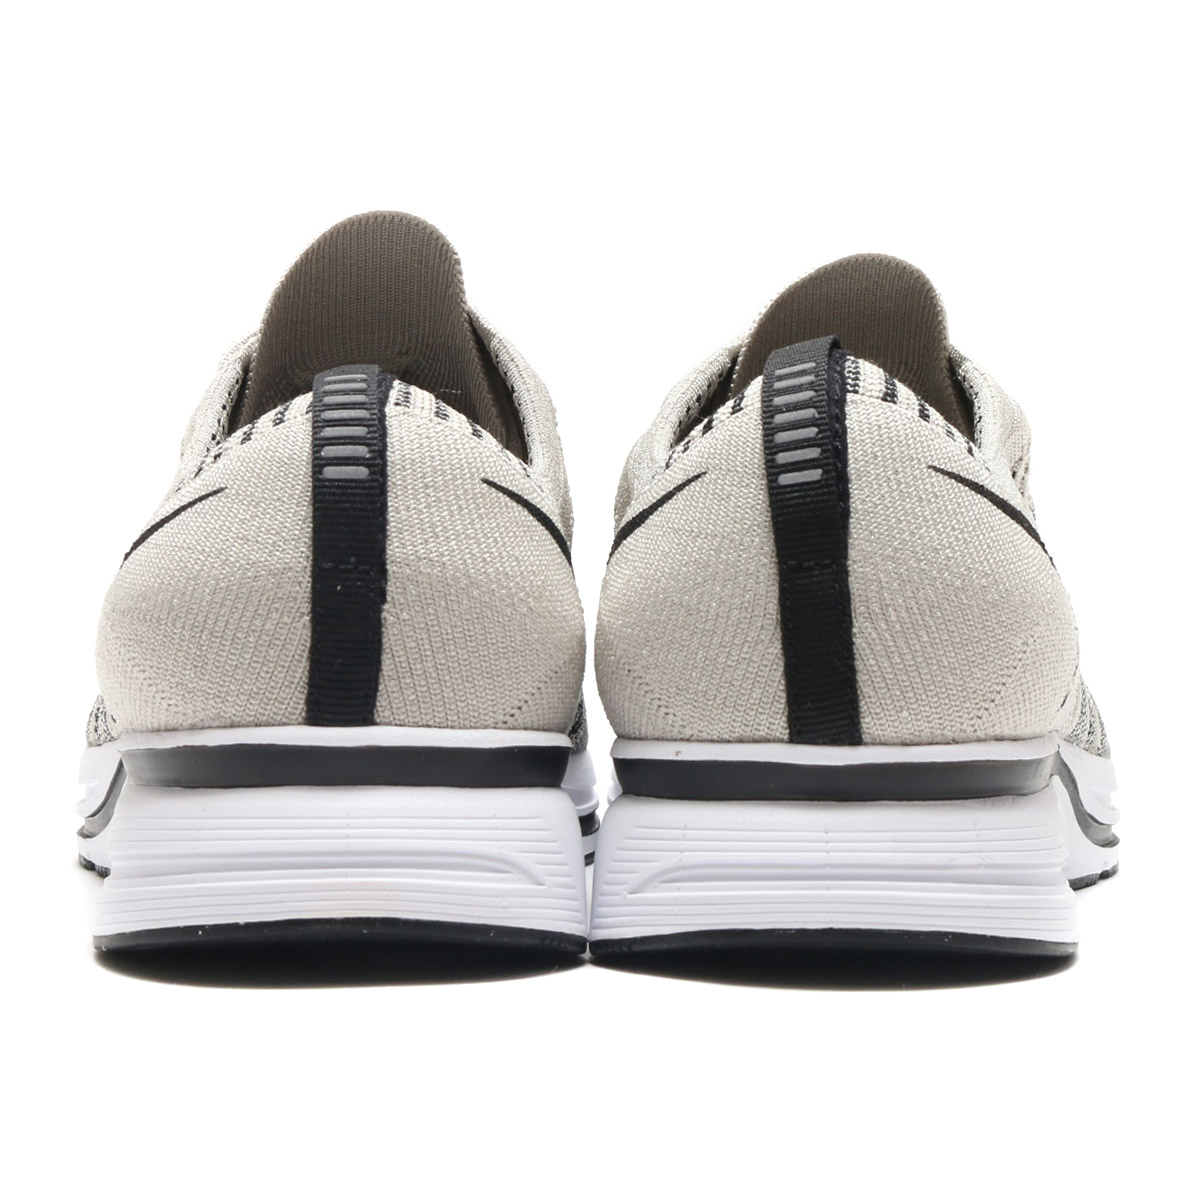 timeless design b1992 bc182 ... NIKE FLYKNIT TRAINER (Nike fried food knit trainer) (PALE GREY BLACK-